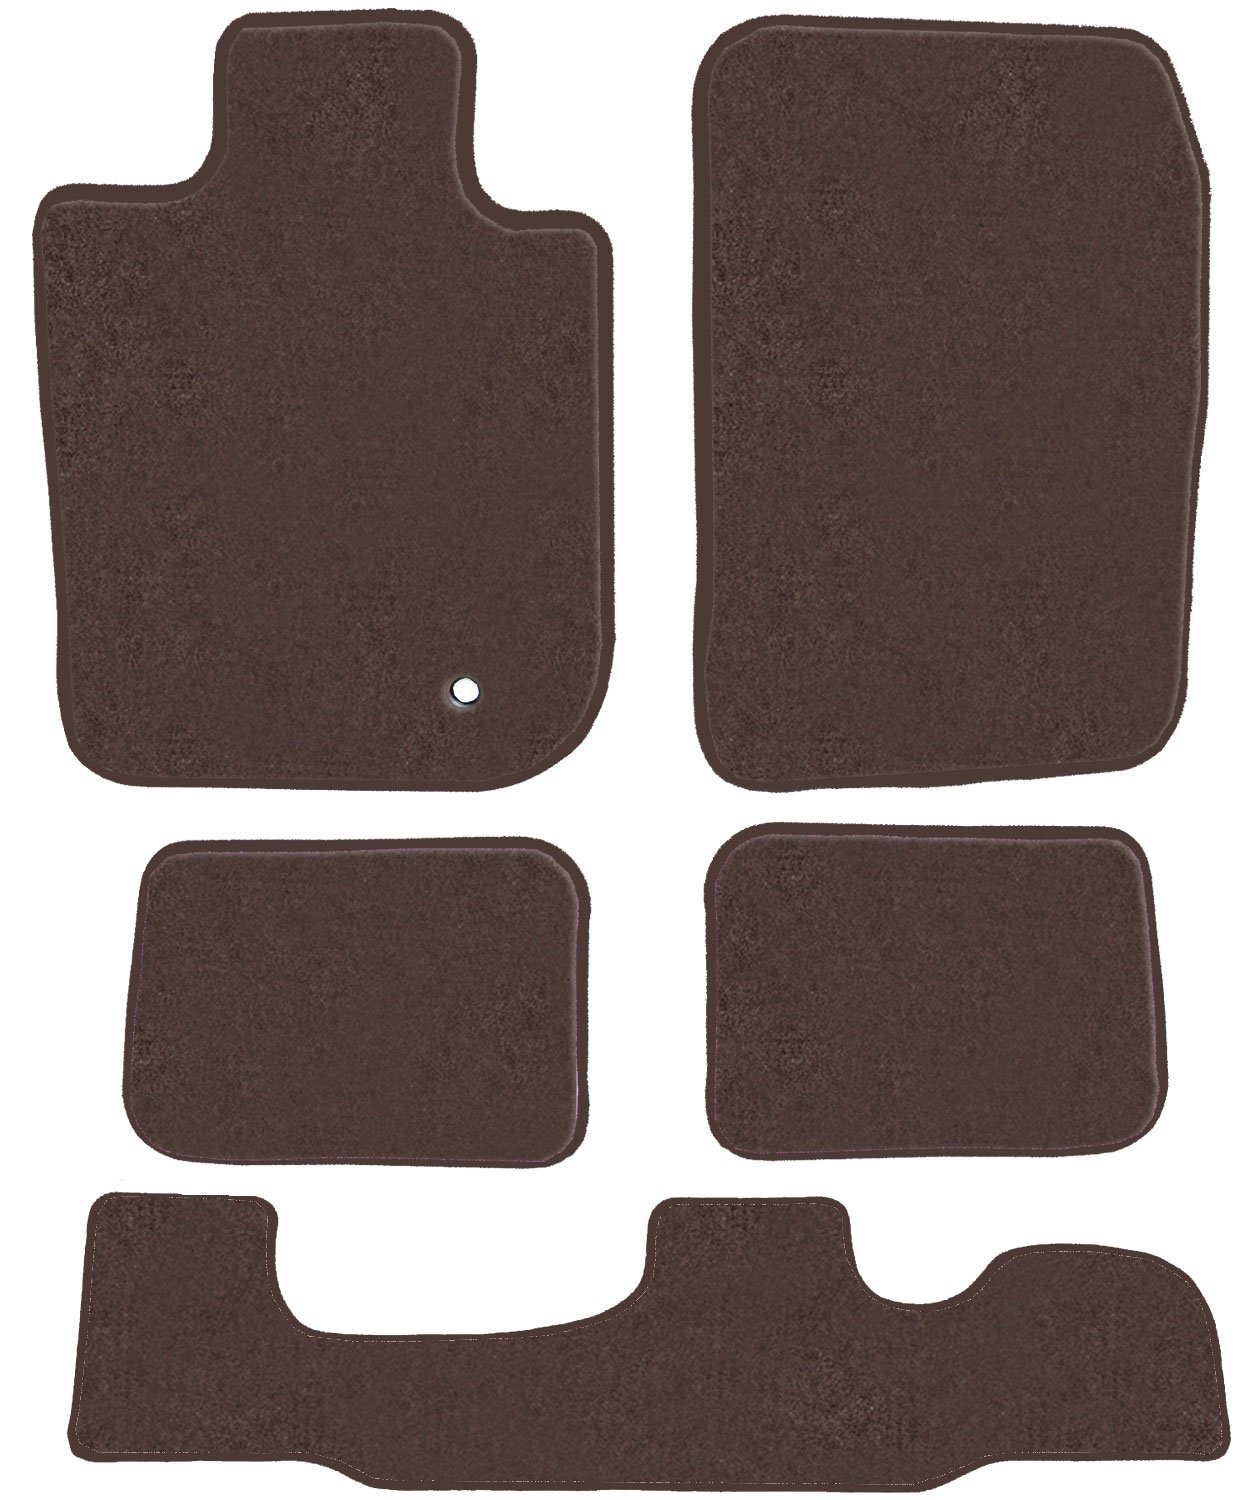 GGBAILEY D3542A-LSB-CH-BR Custom Fit Car Mats for 2006 2008 5 Piece Floor 2nd /& 3rd Row Passenger 2007 2009 2010 Jeep Commander Brown Driver